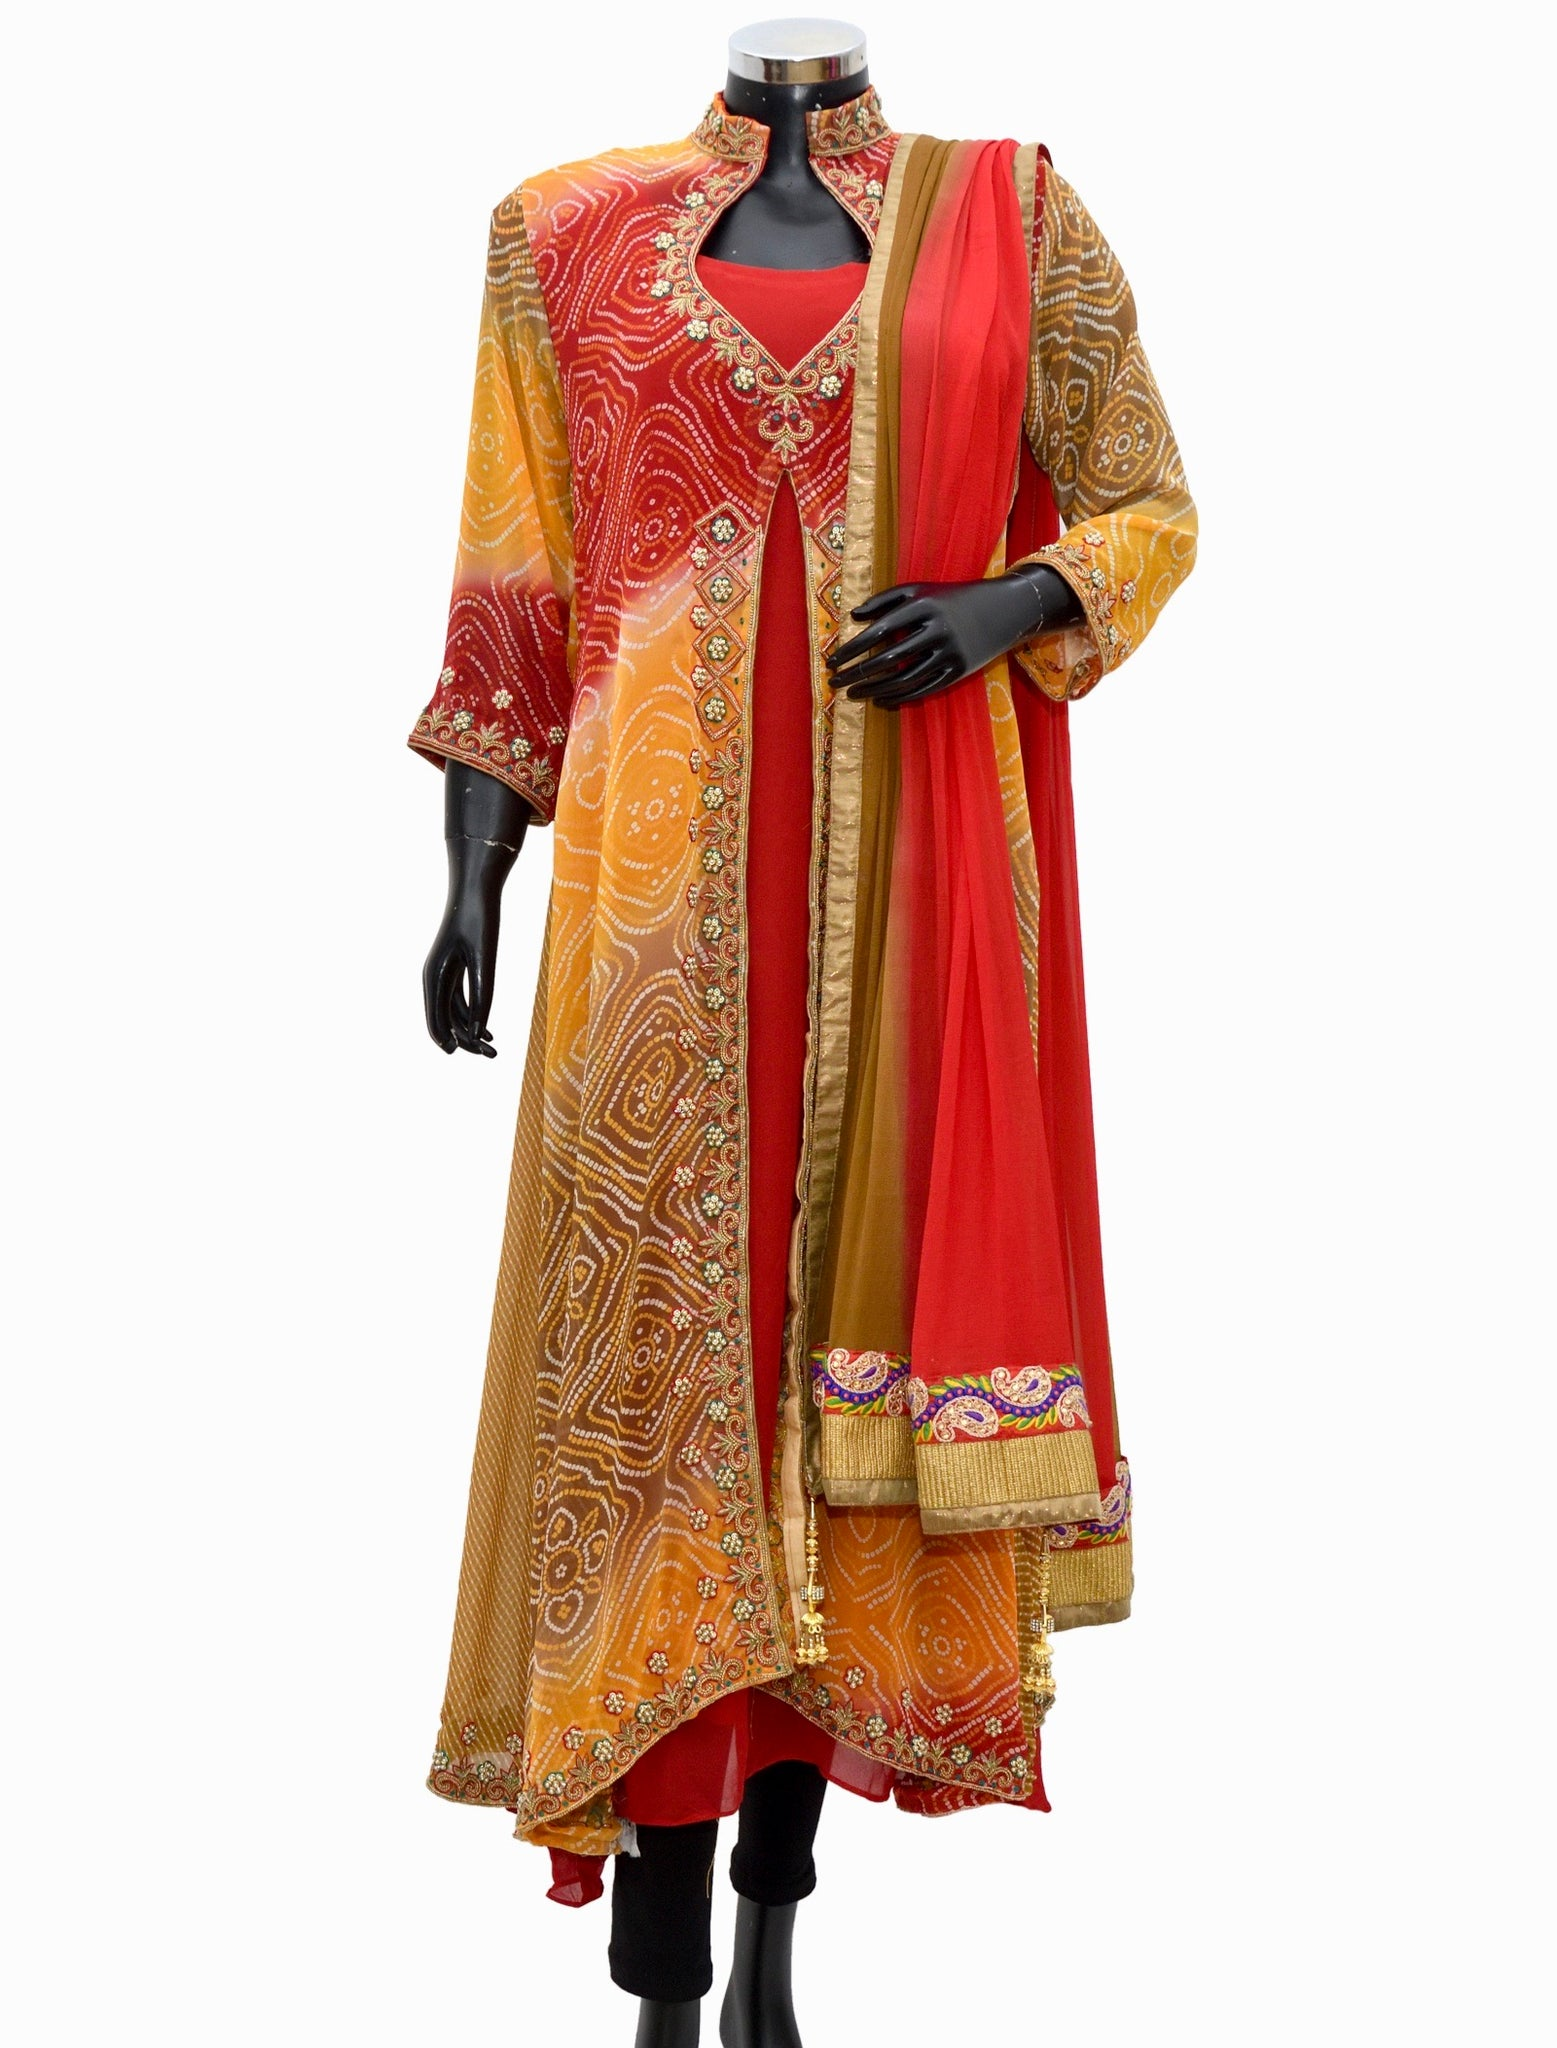 Embroidered long jacket dress #fdn1092-481